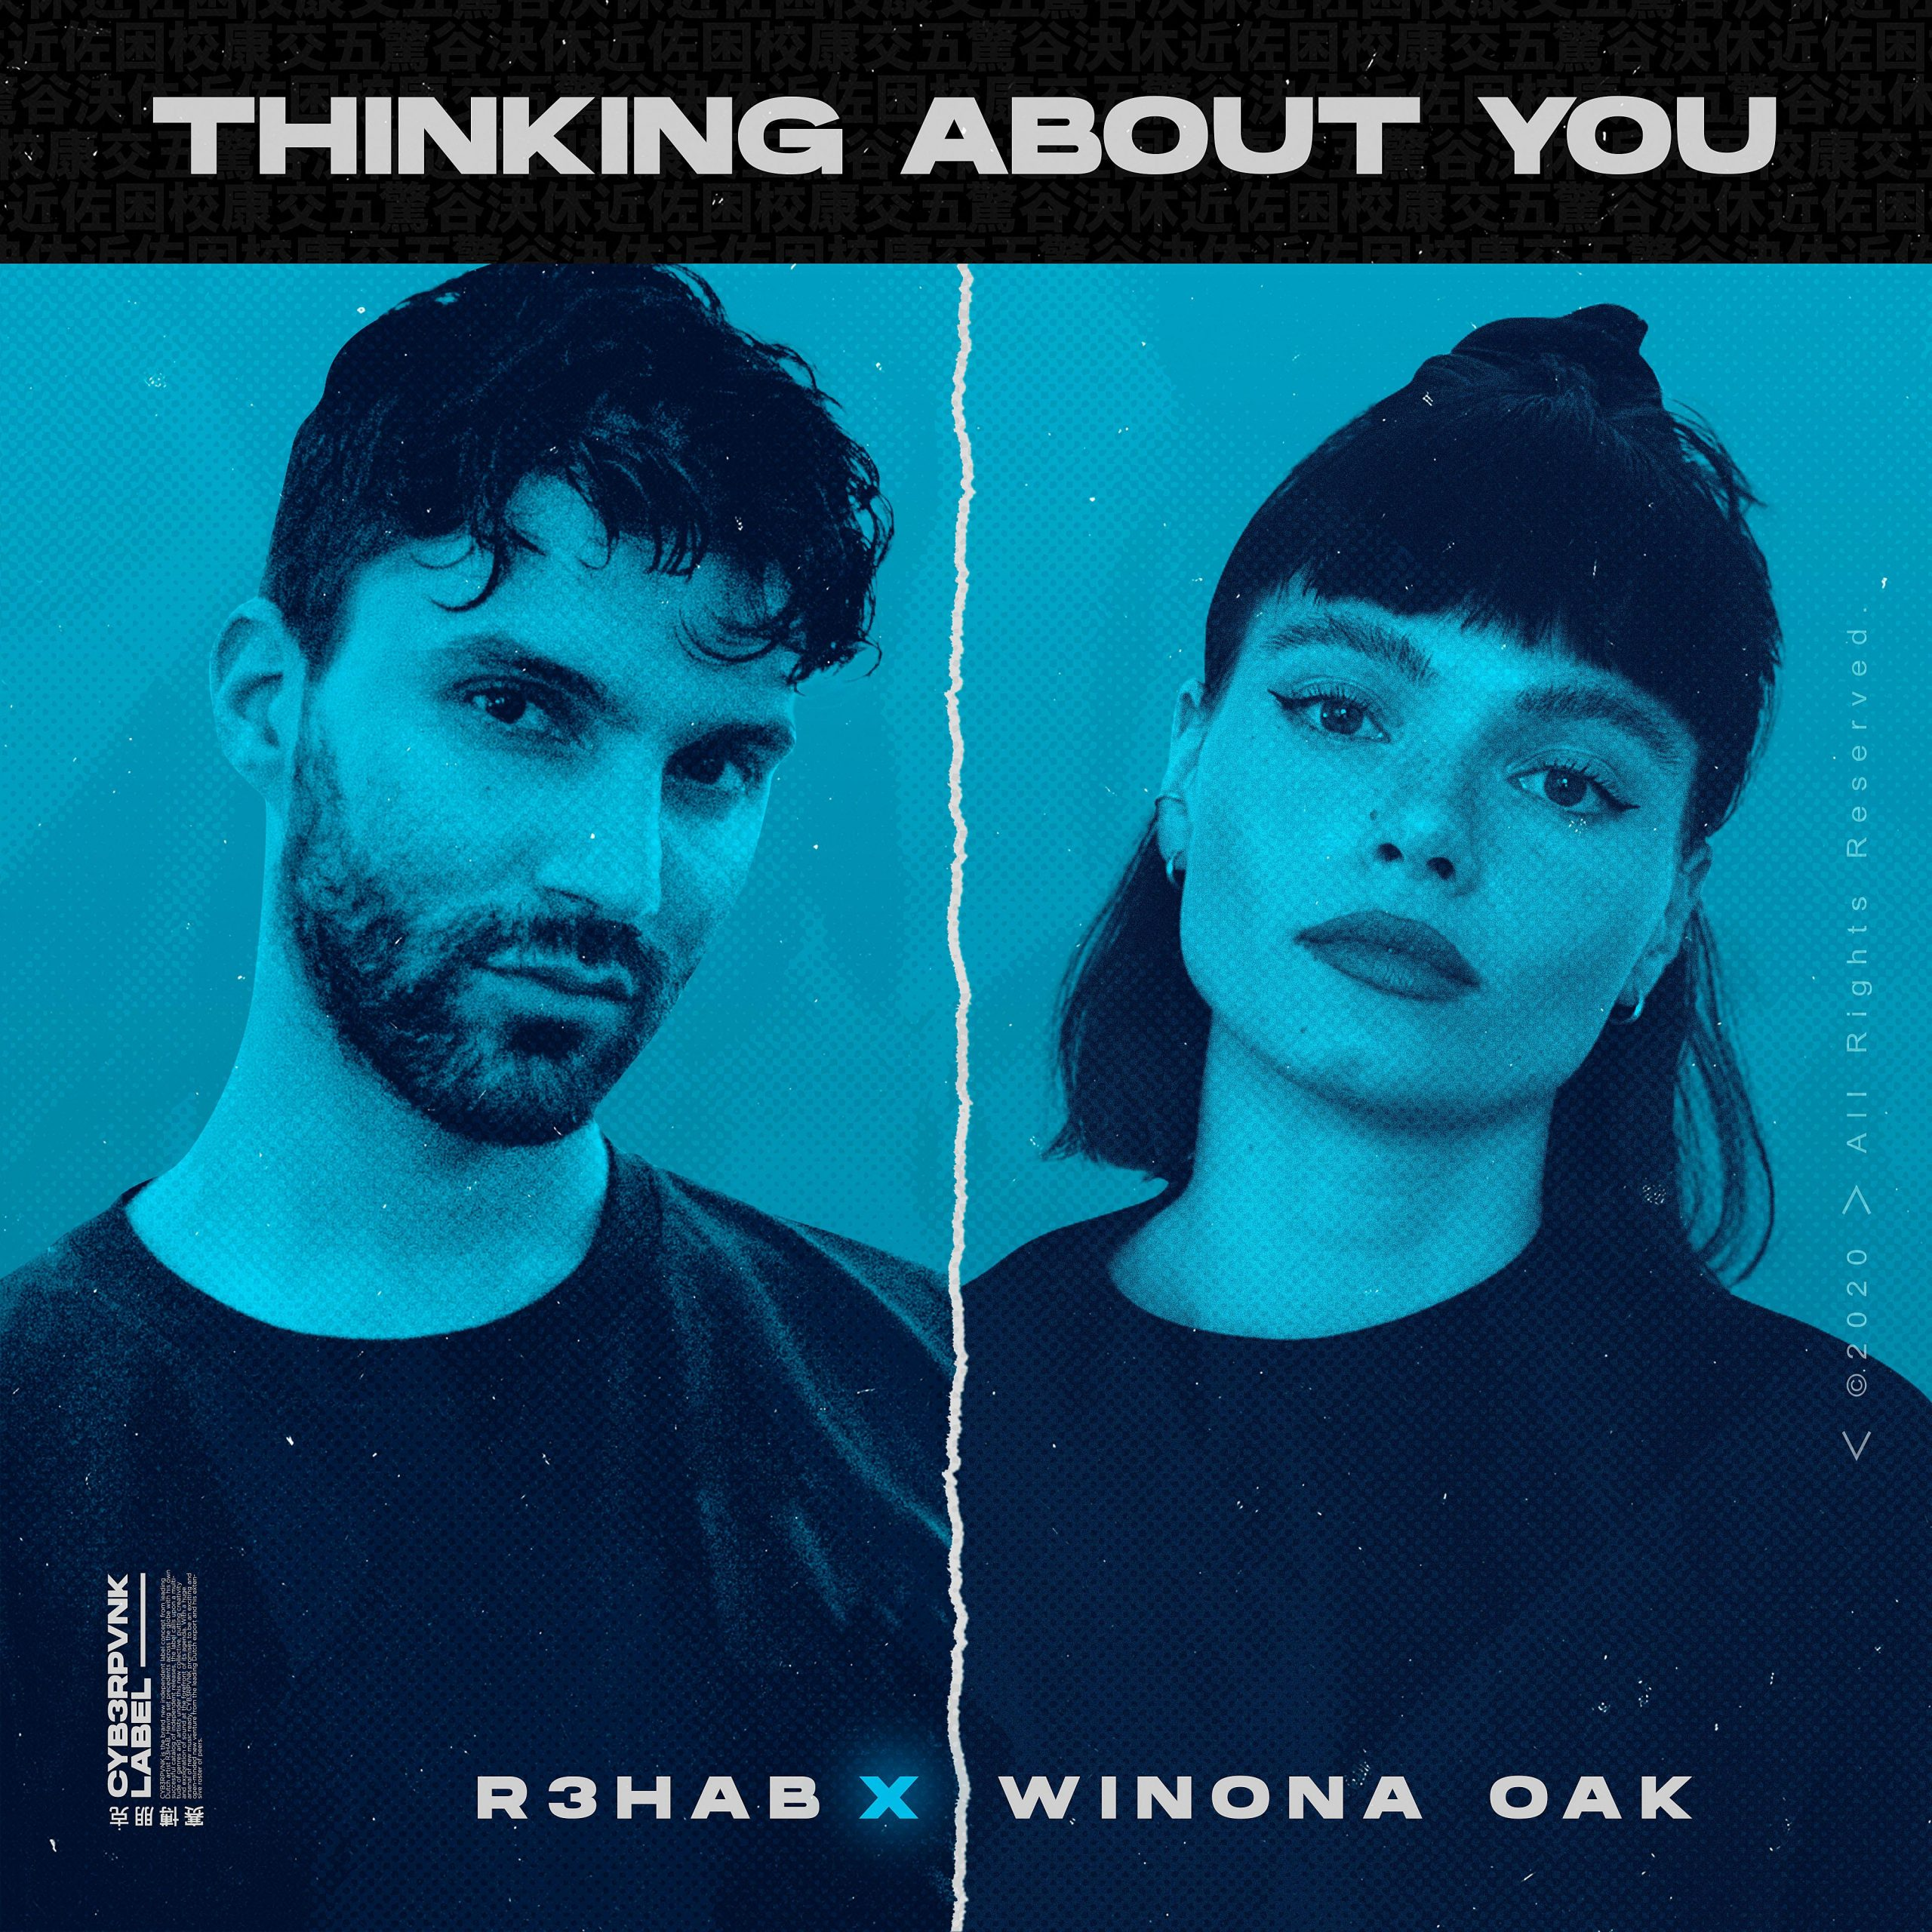 [Cover] R3HAB & Winona Oak - Thinking About You